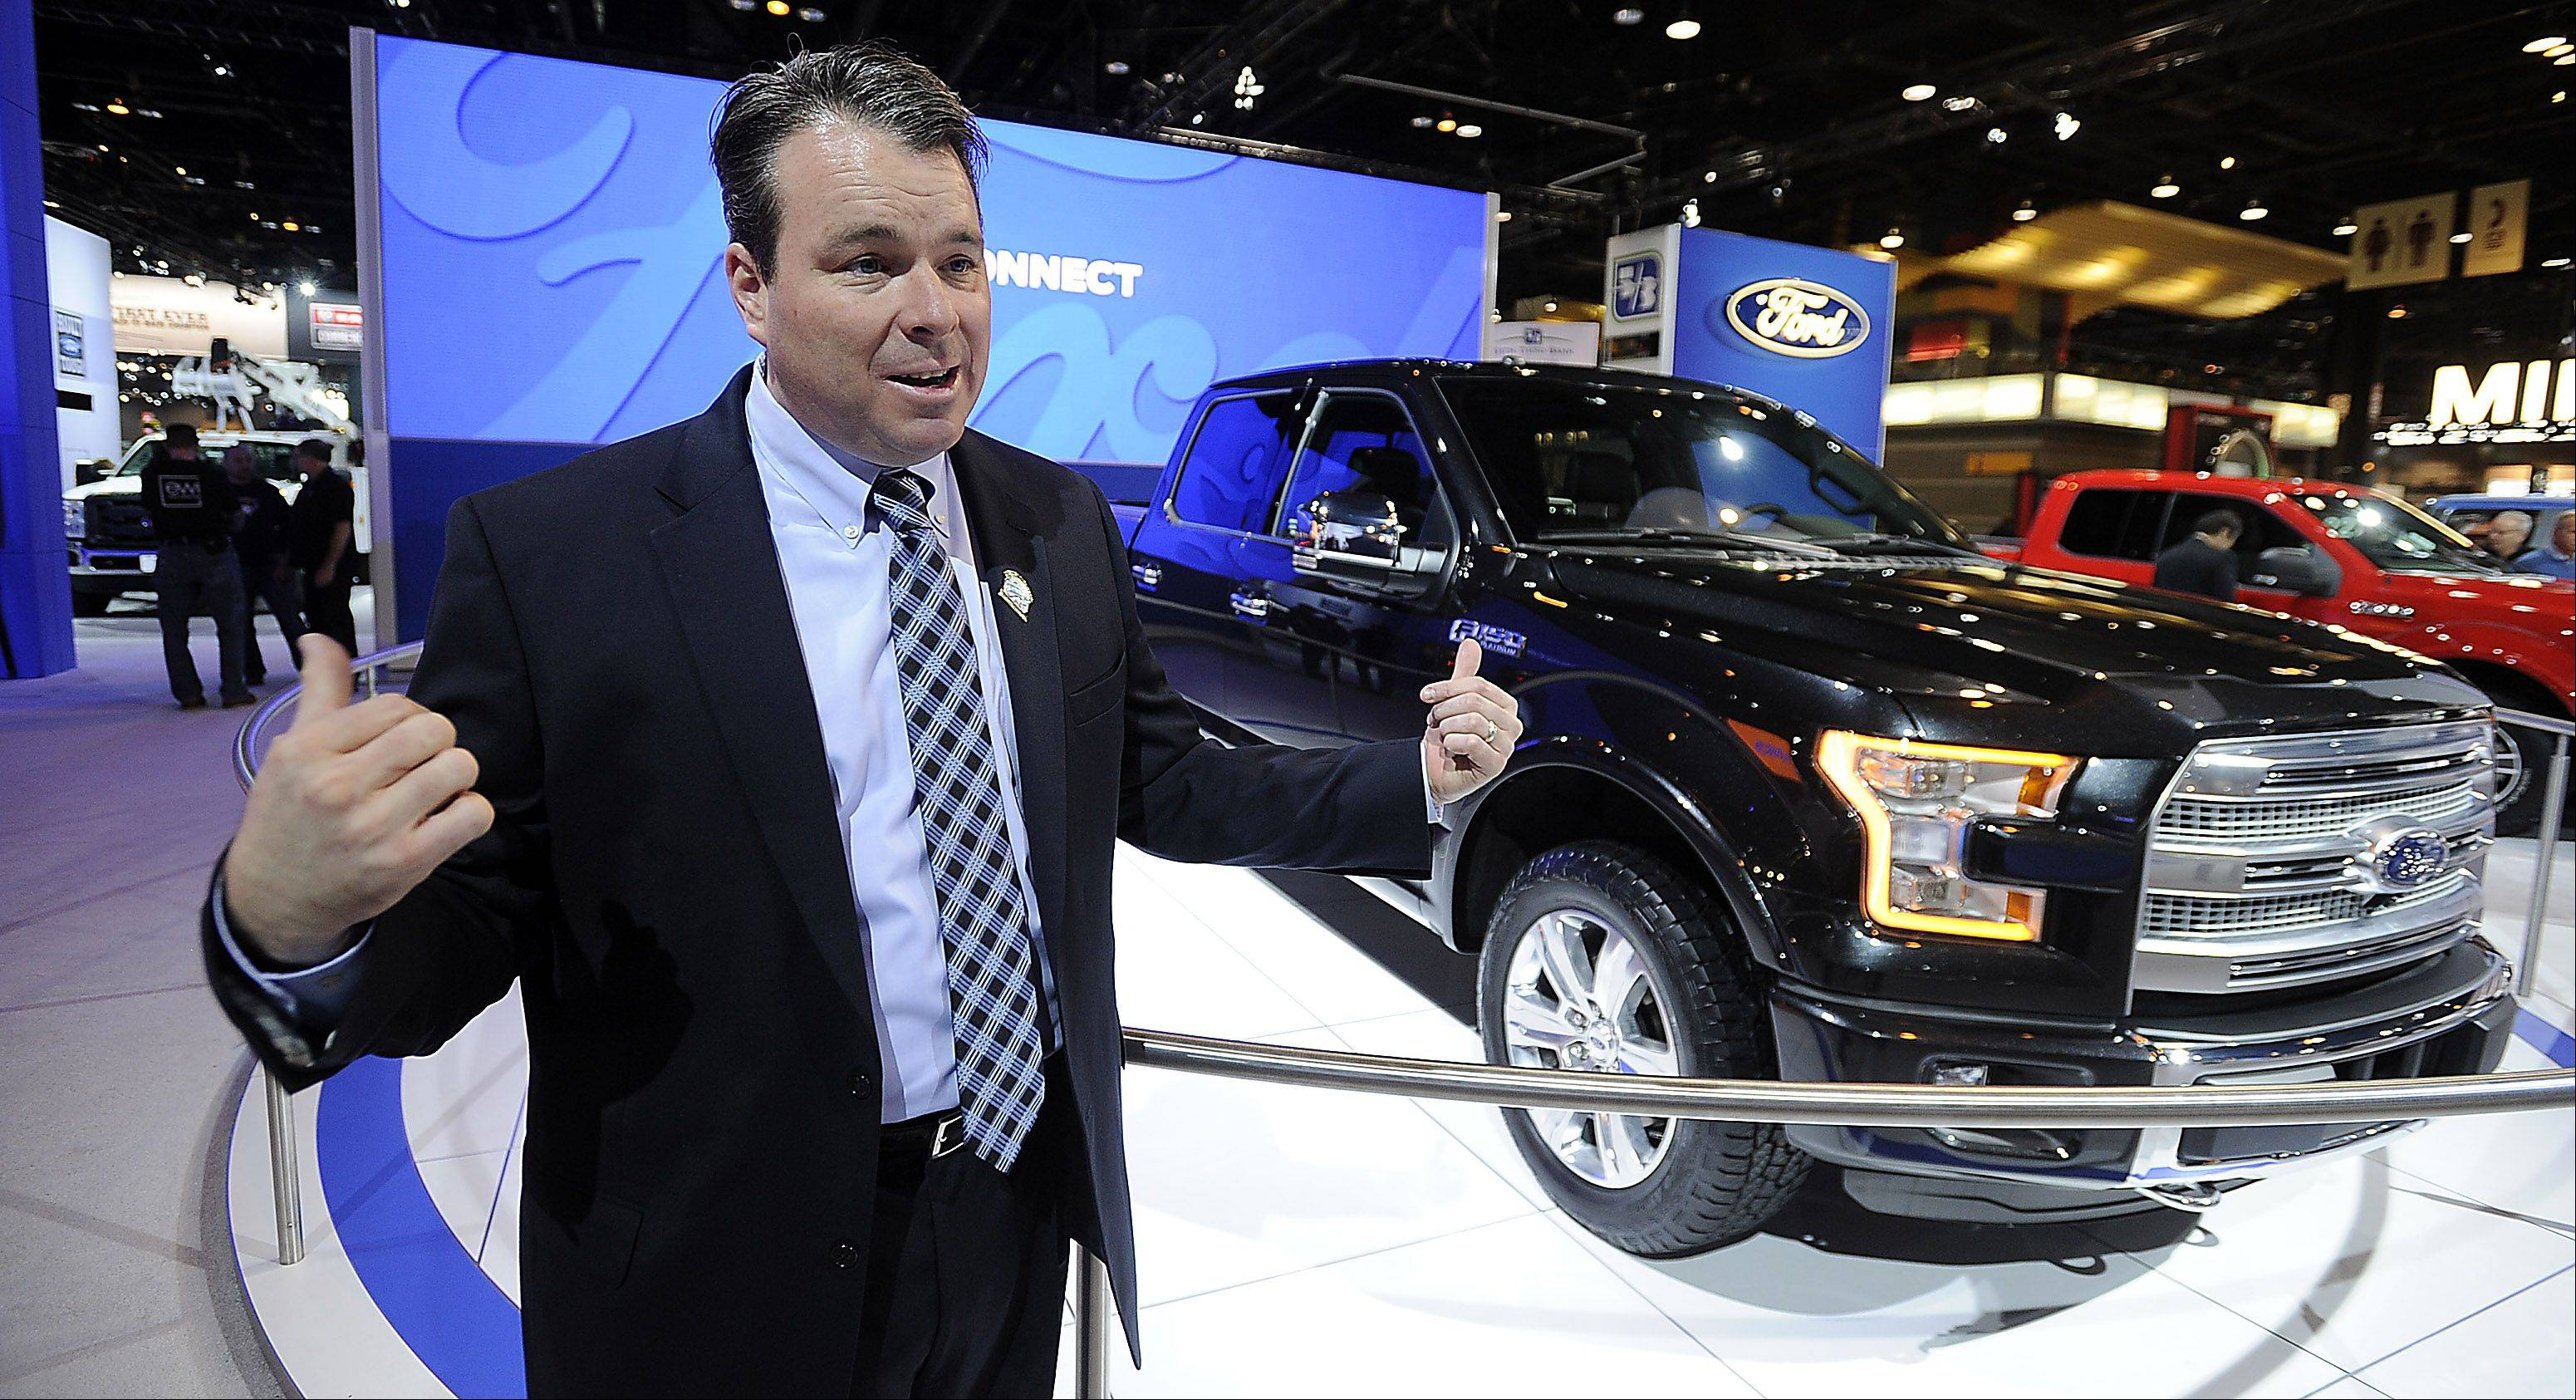 Auto show: Lighter, fuel-efficient and safer